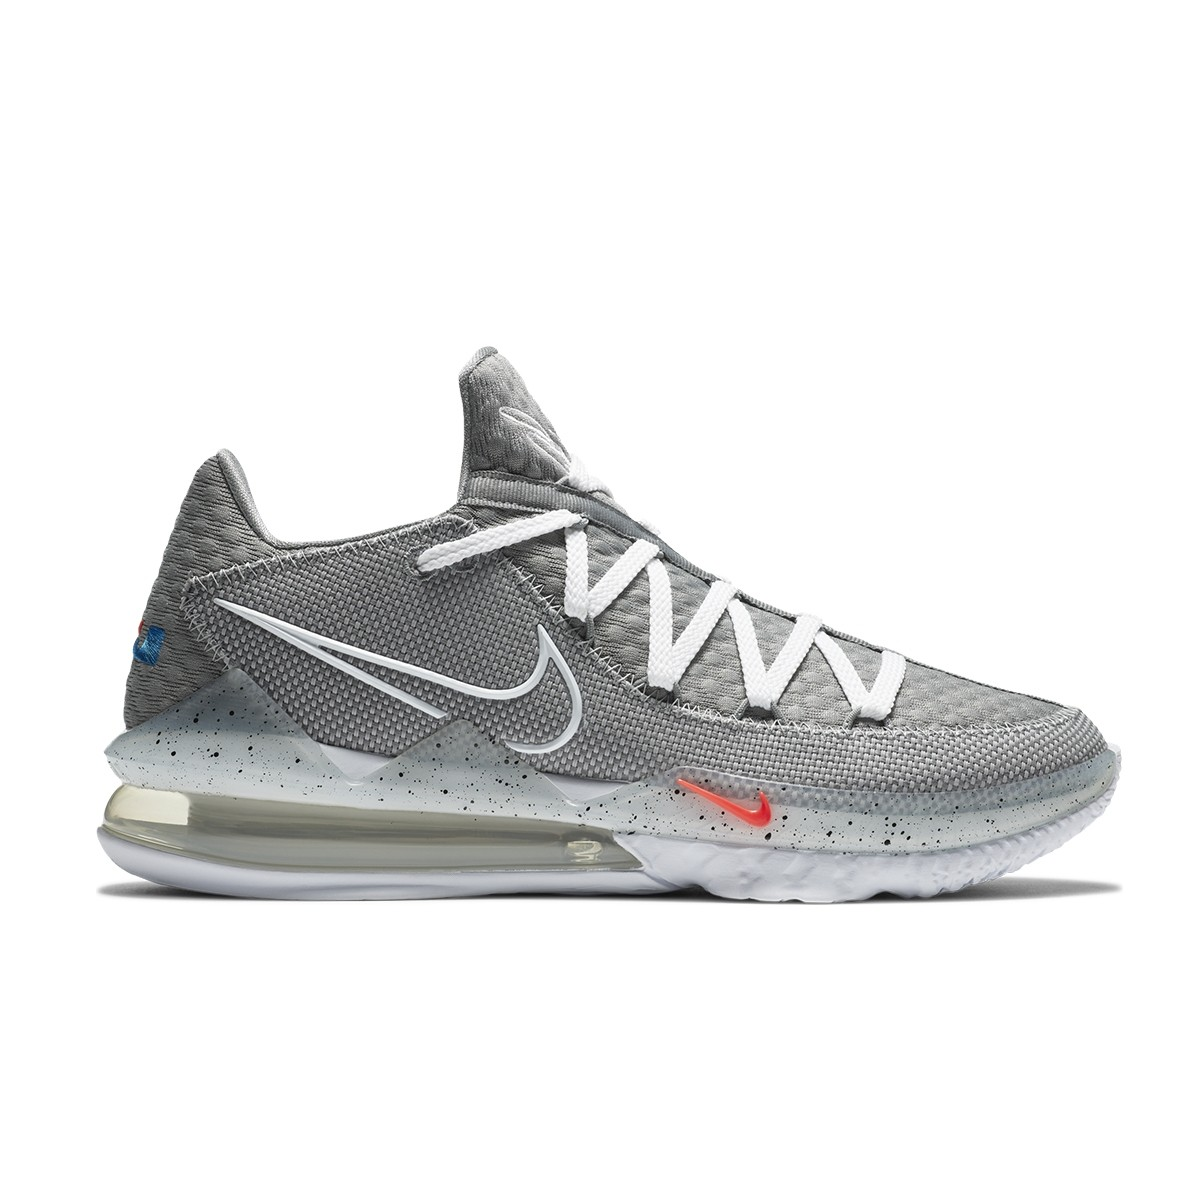 Nike Lebron XVII Low 'Particle Grey'